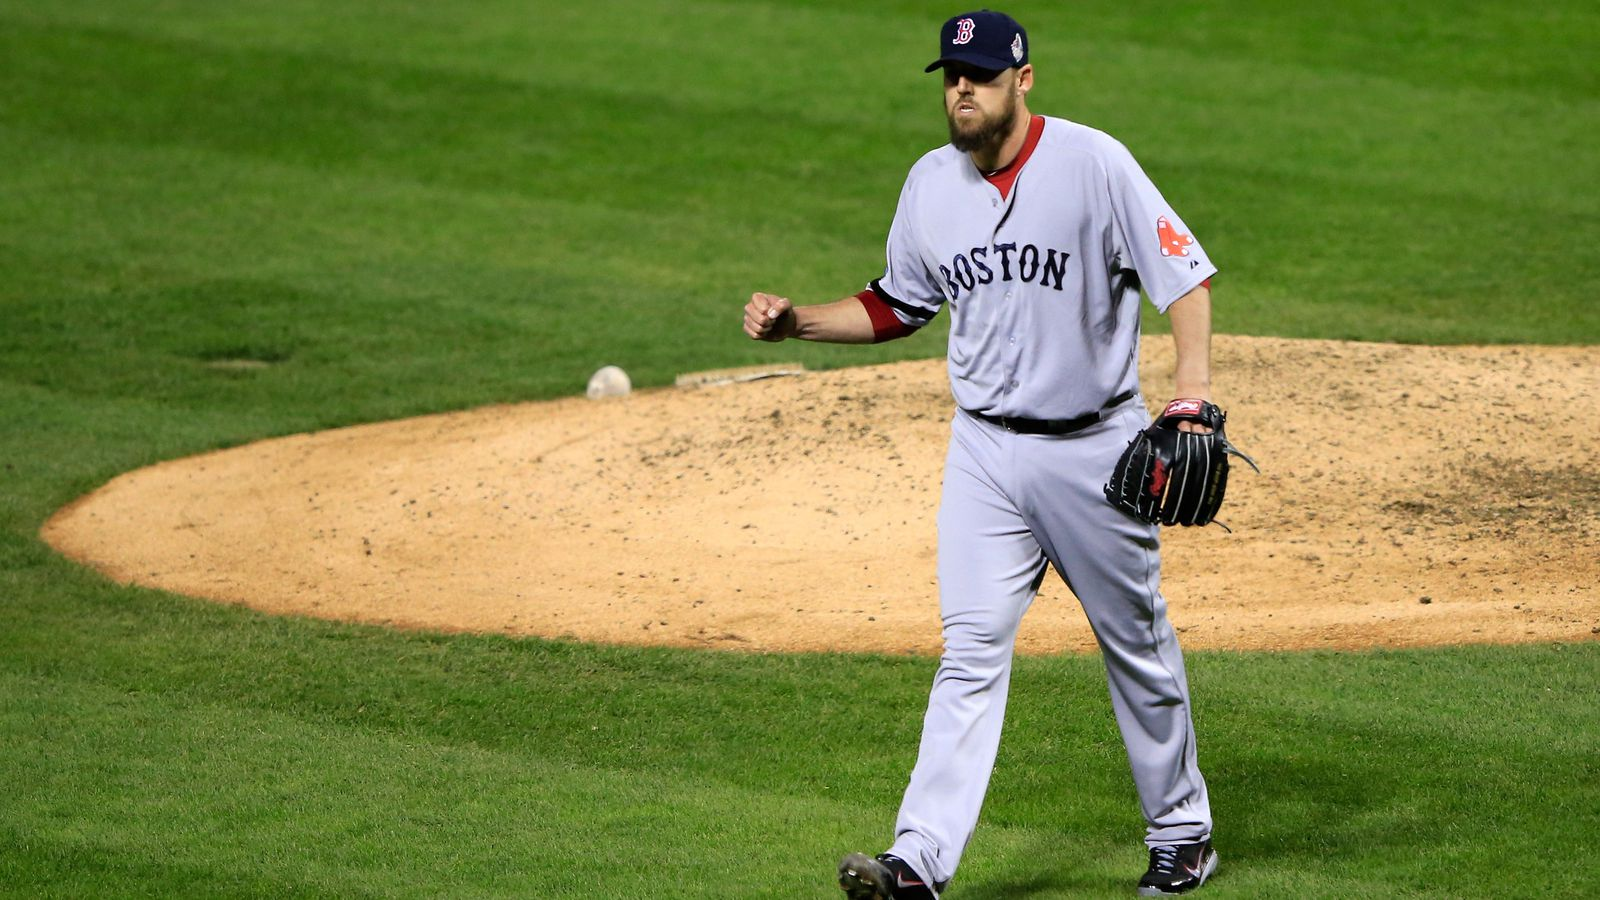 The real-world advantage of the Red Sox